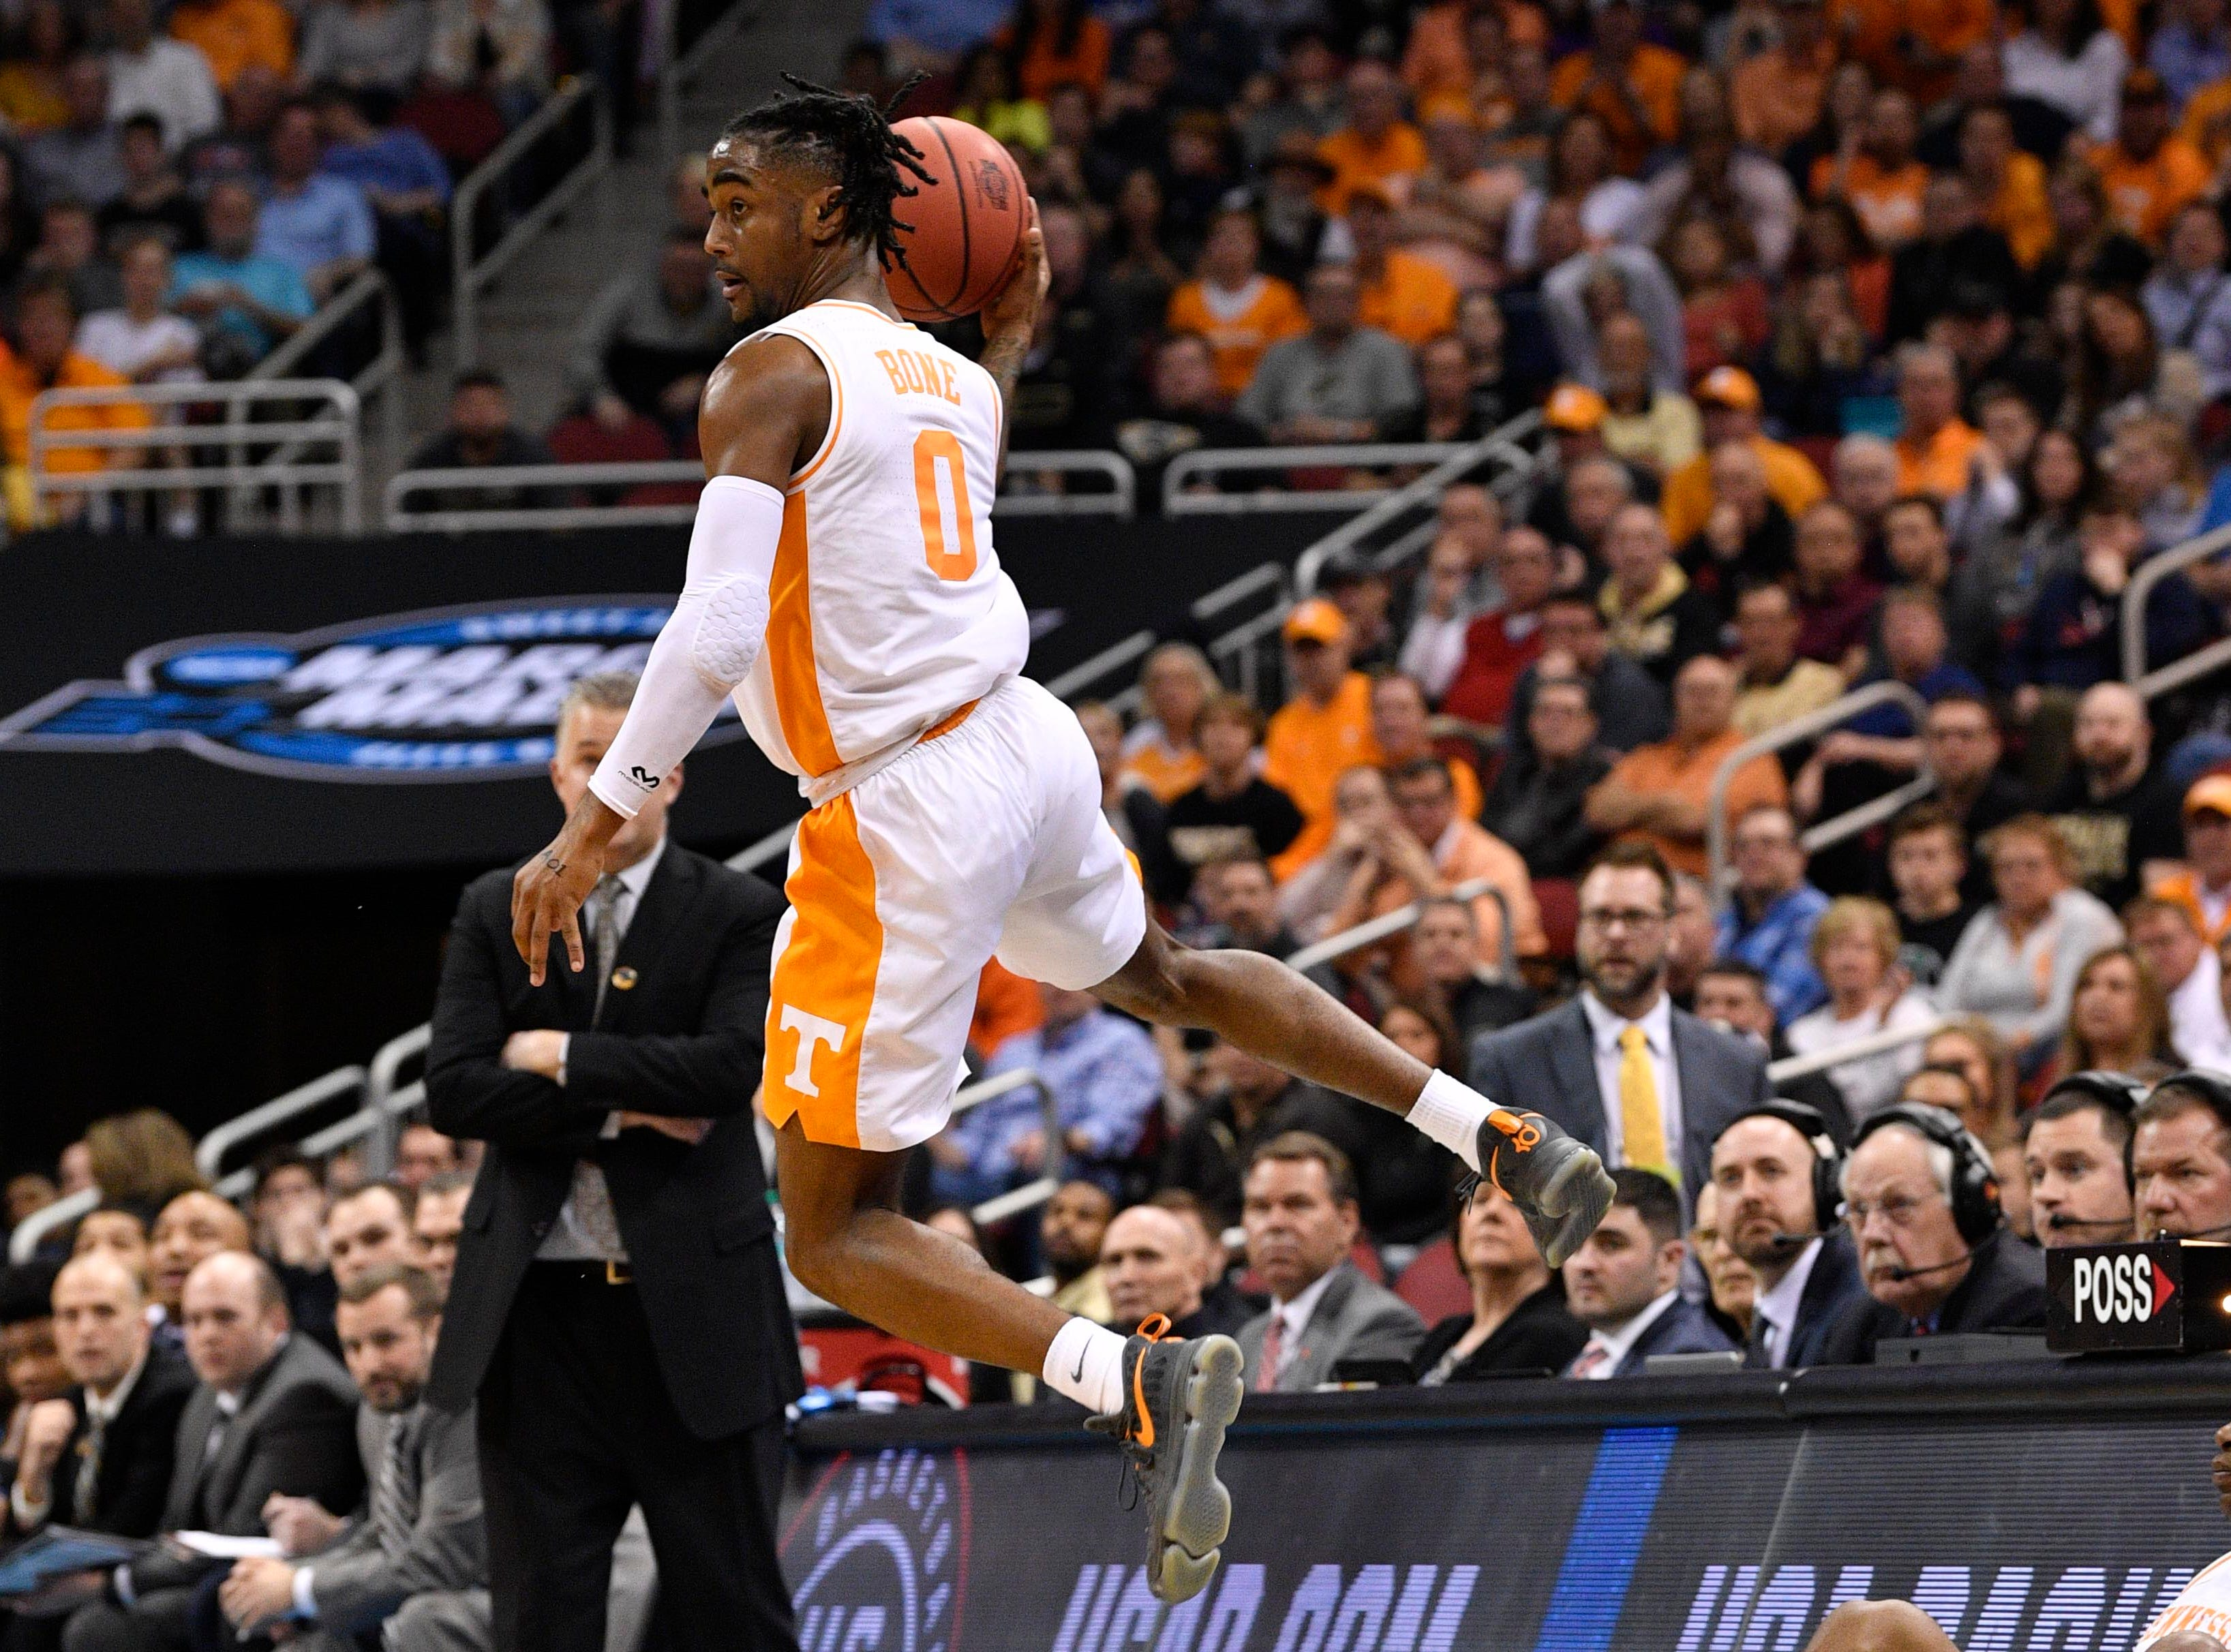 Mar 28, 2019; Louisville, KY, United States; Tennessee Volunteers guard Jordan Bone (0) jumps with the ball during the first half in the semifinals of the south regional against the Purdue Boilermakers of the 2019 NCAA Tournament at KFC Yum Center. Mandatory Credit: Jamie Rhodes-USA TODAY Sports